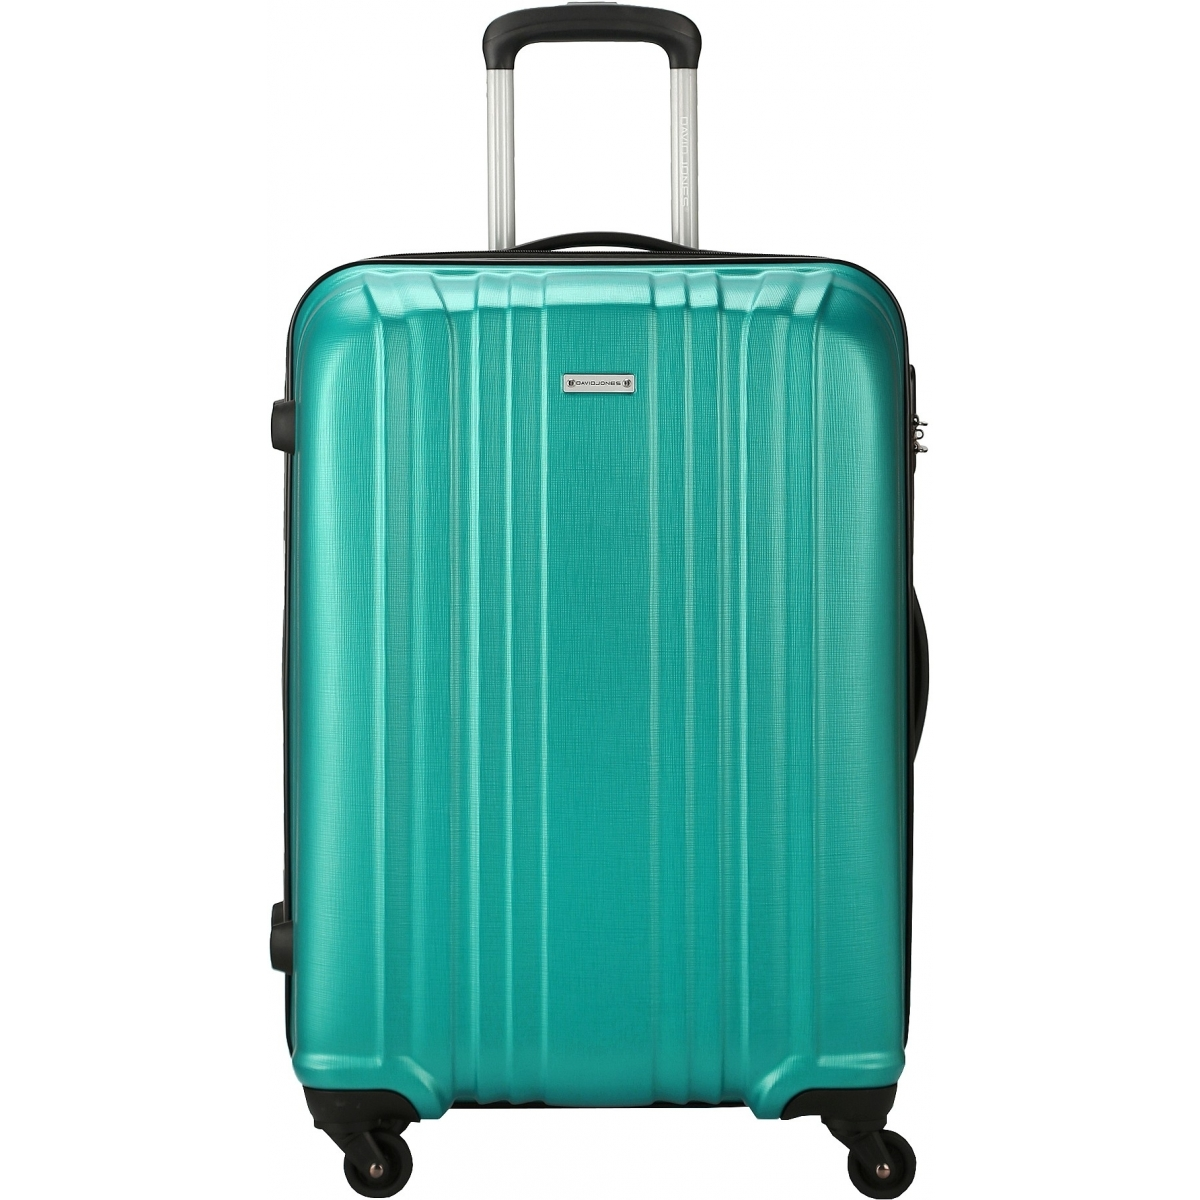 valise rigide david jones taille m 66cm ba10171m couleur principale turquoise promotion. Black Bedroom Furniture Sets. Home Design Ideas